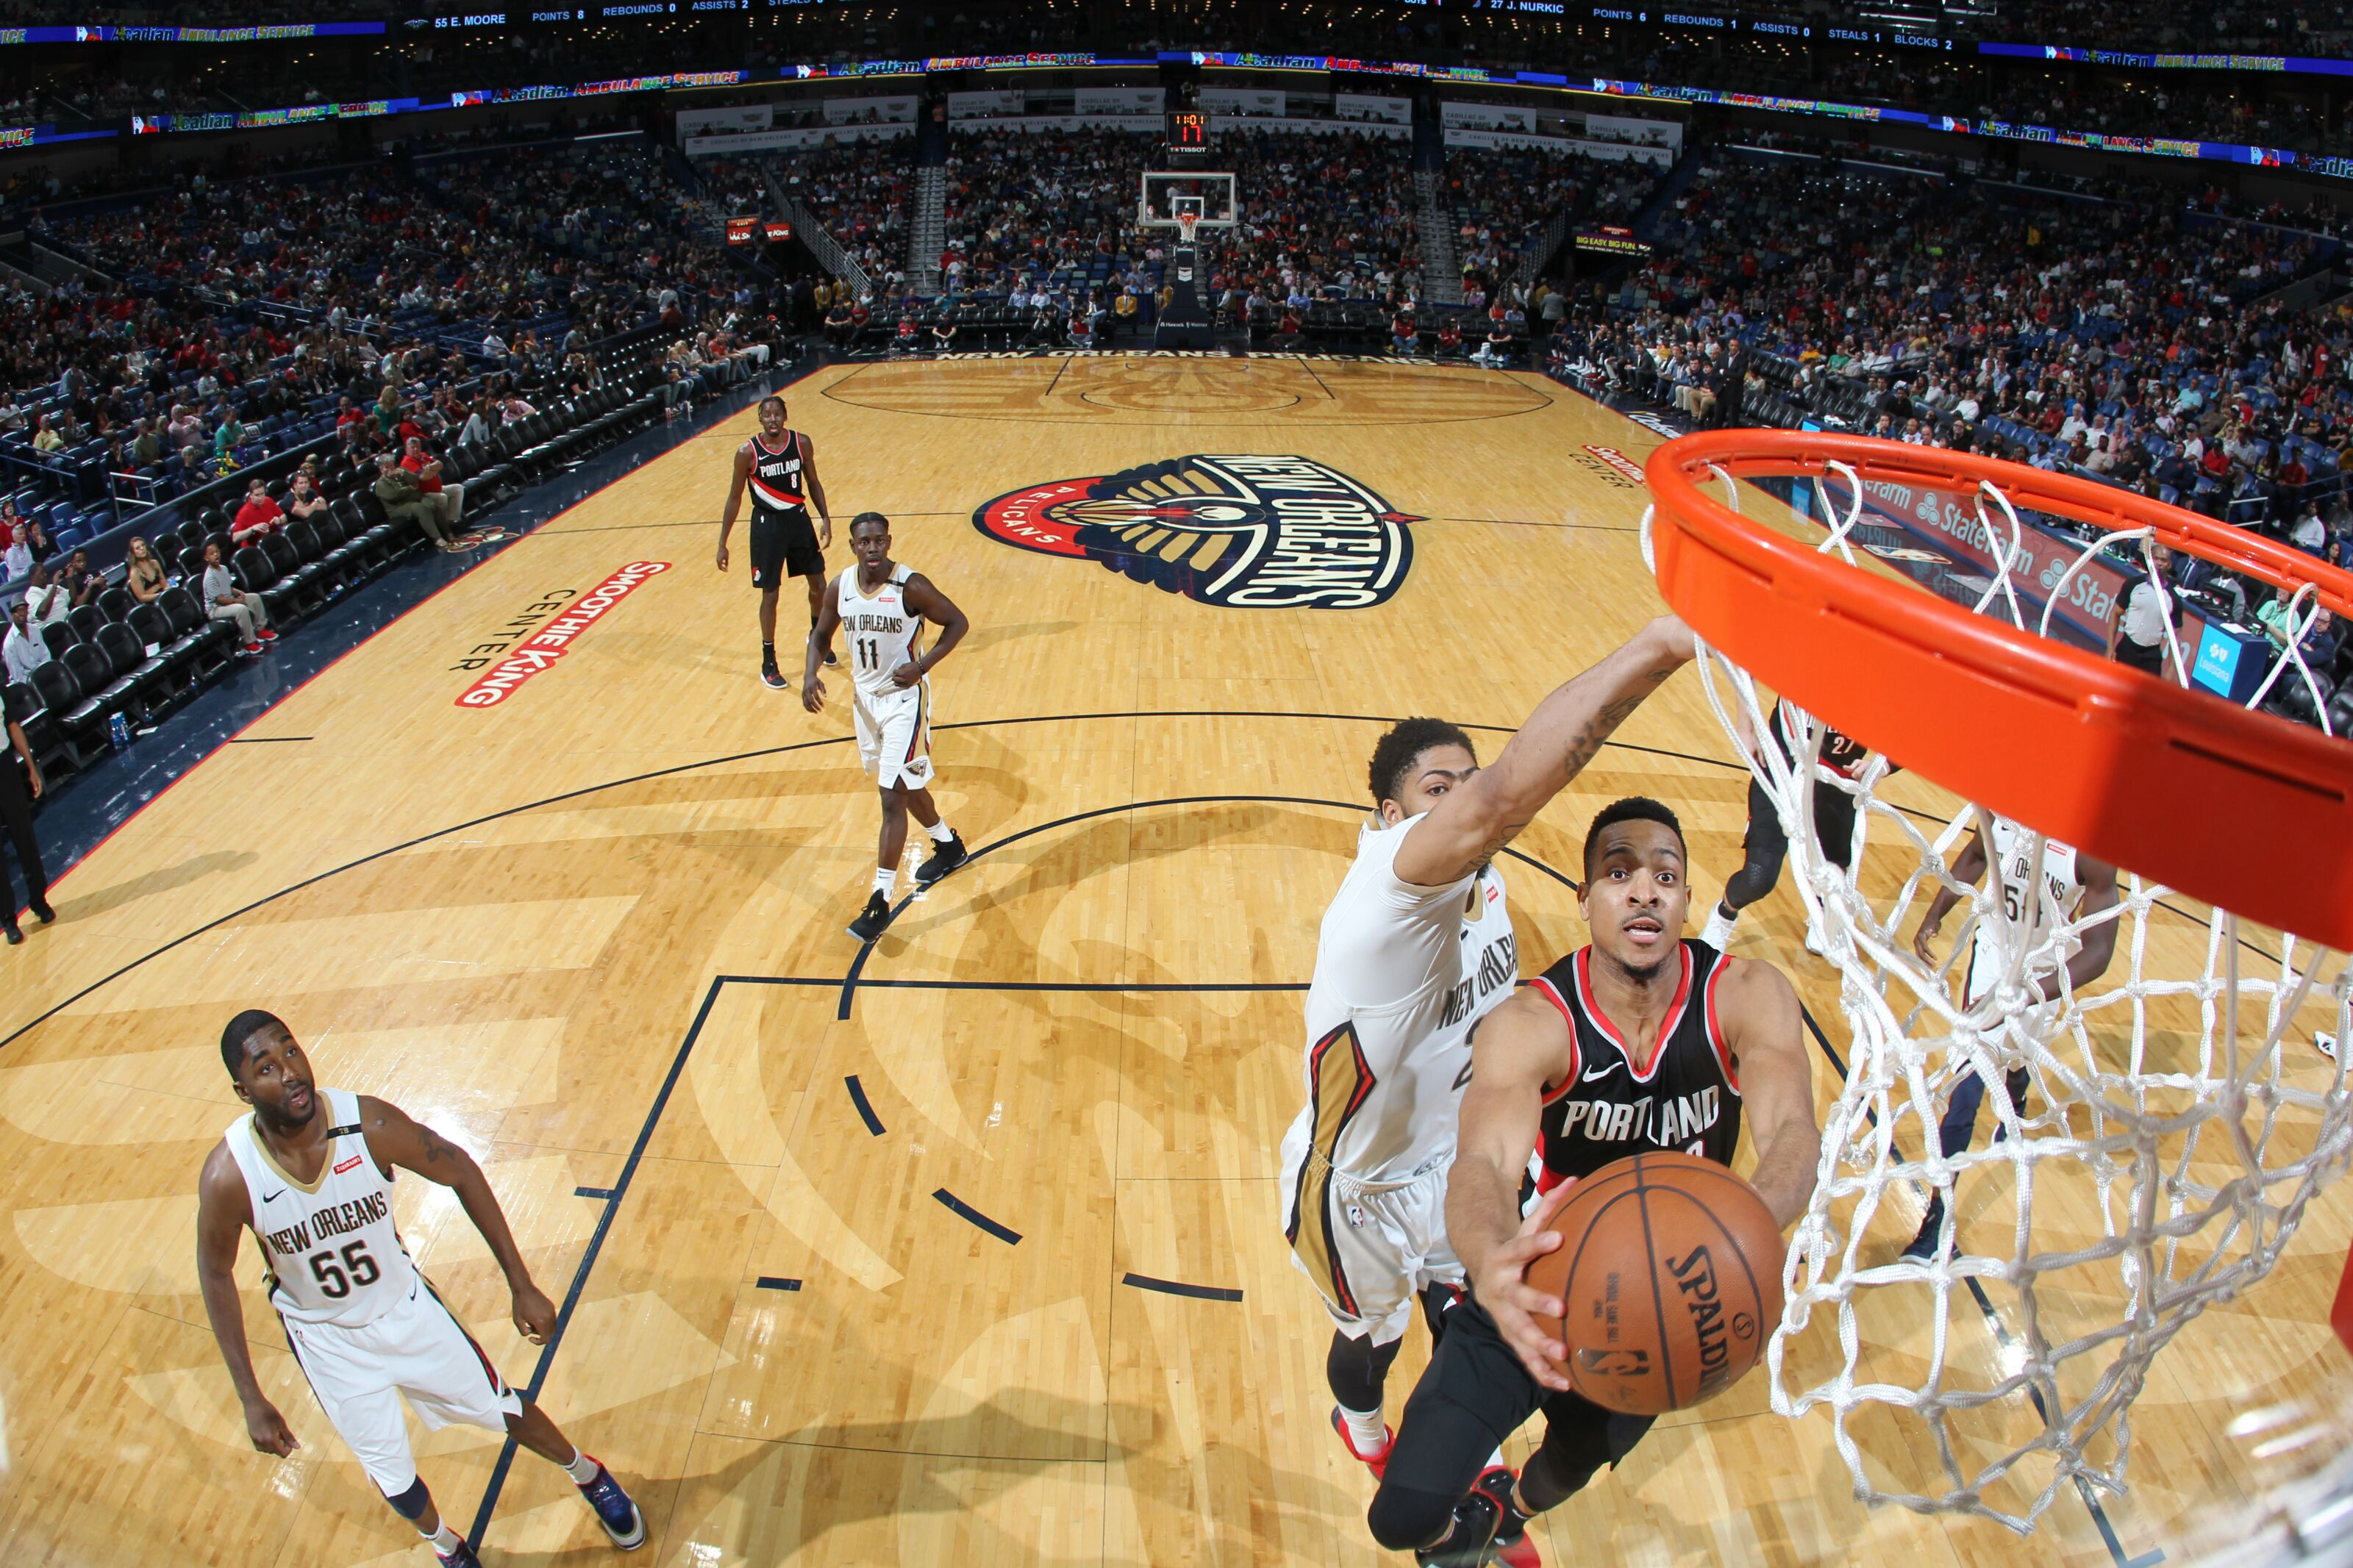 Pelicans Vs Trail Blazers Detail: They Vanquished The Trail Blazers, But How Good Are The